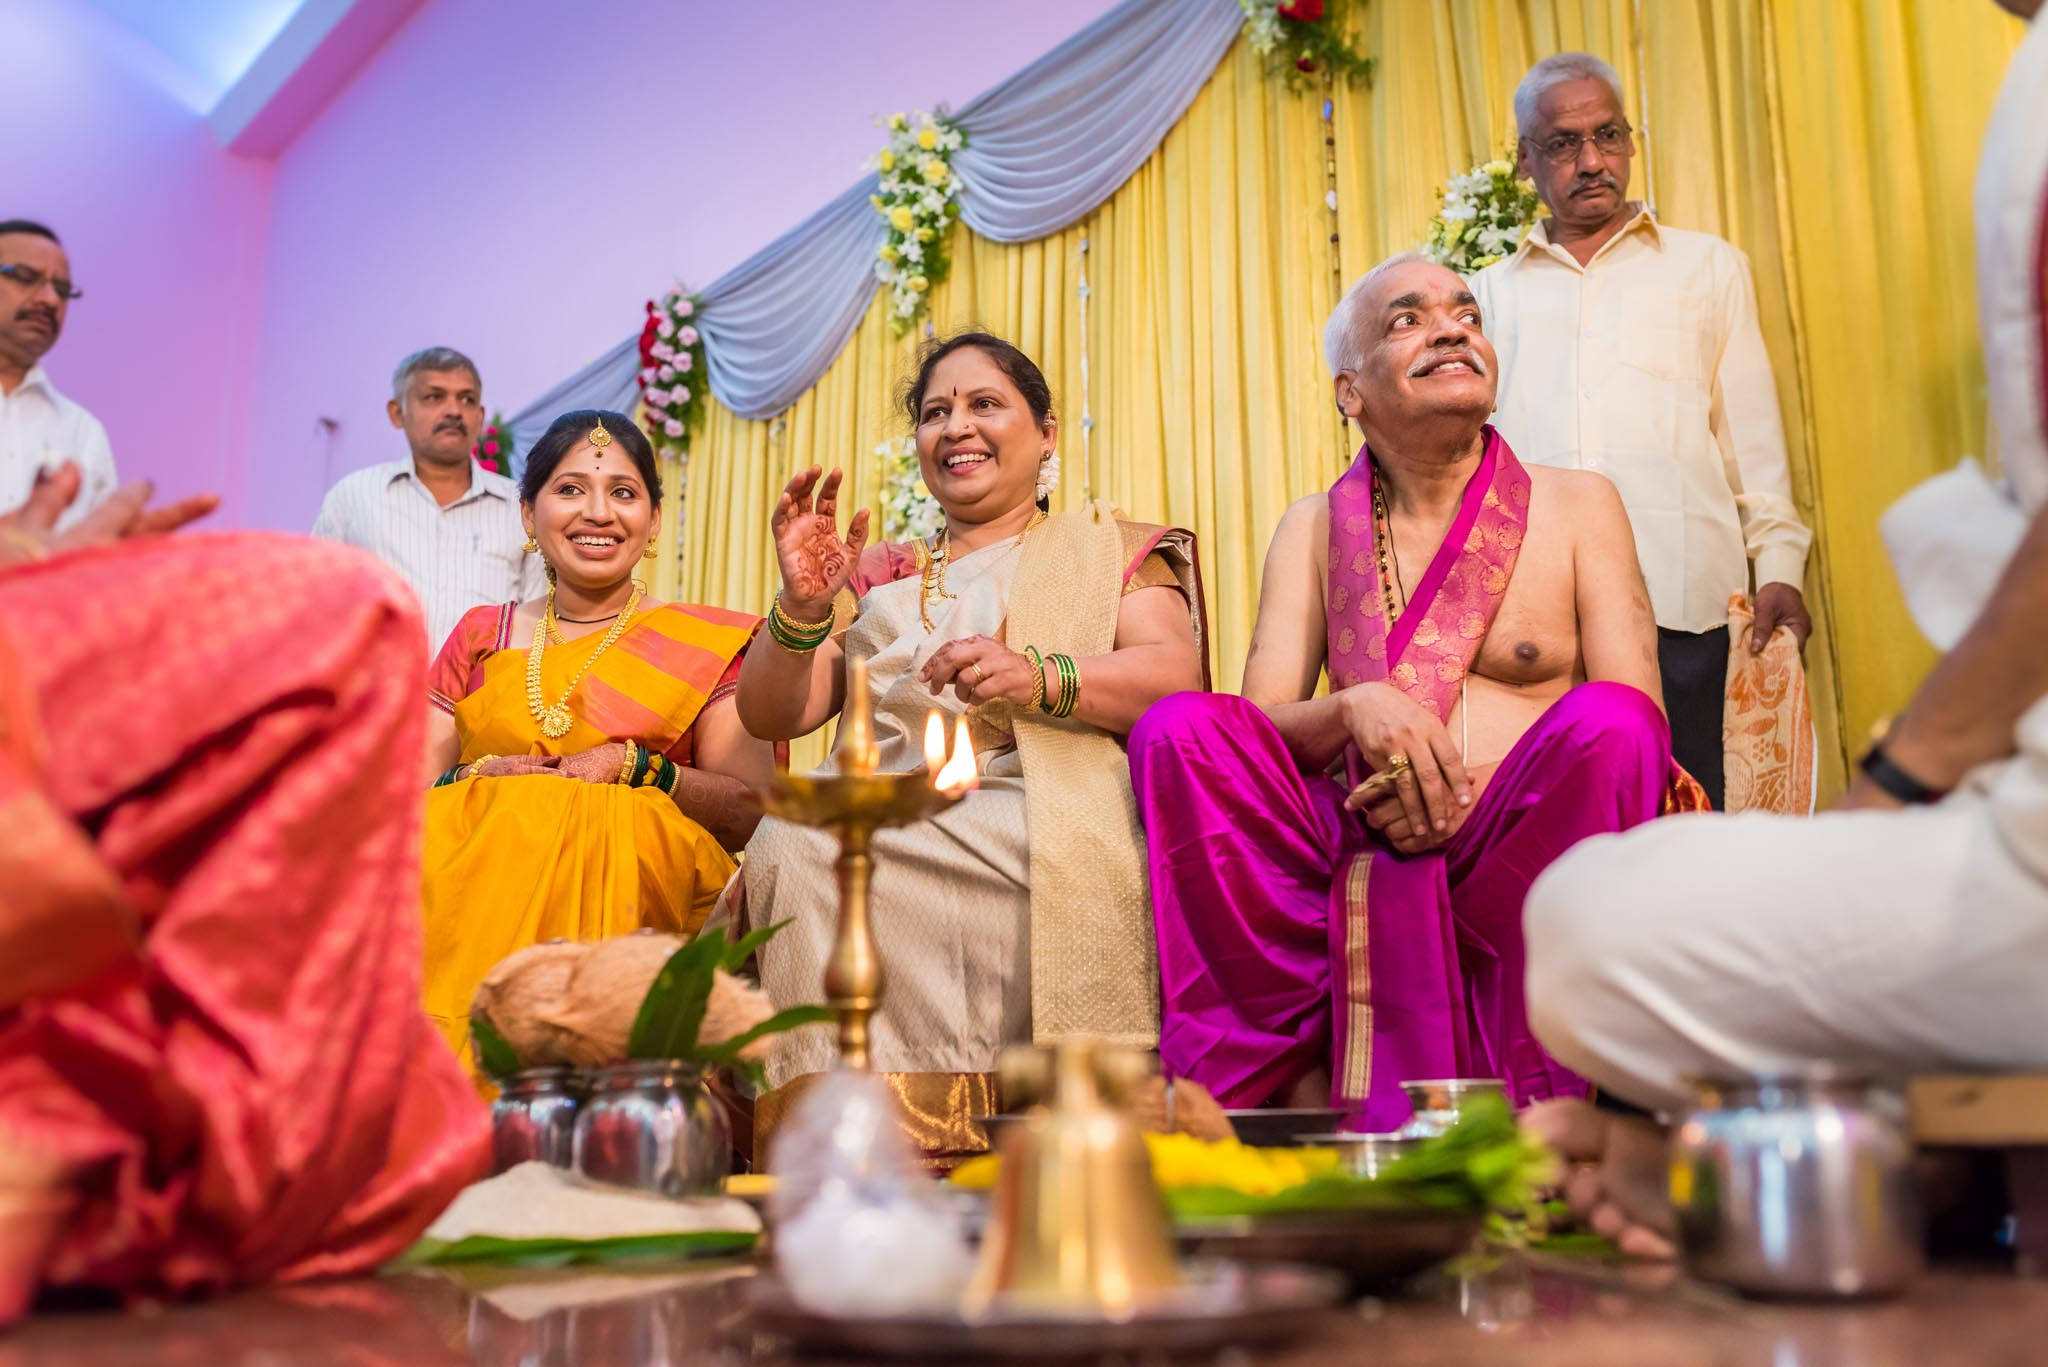 WhatKnot-Candid-Wedding-Photography-Mumbai-Bangalore-144